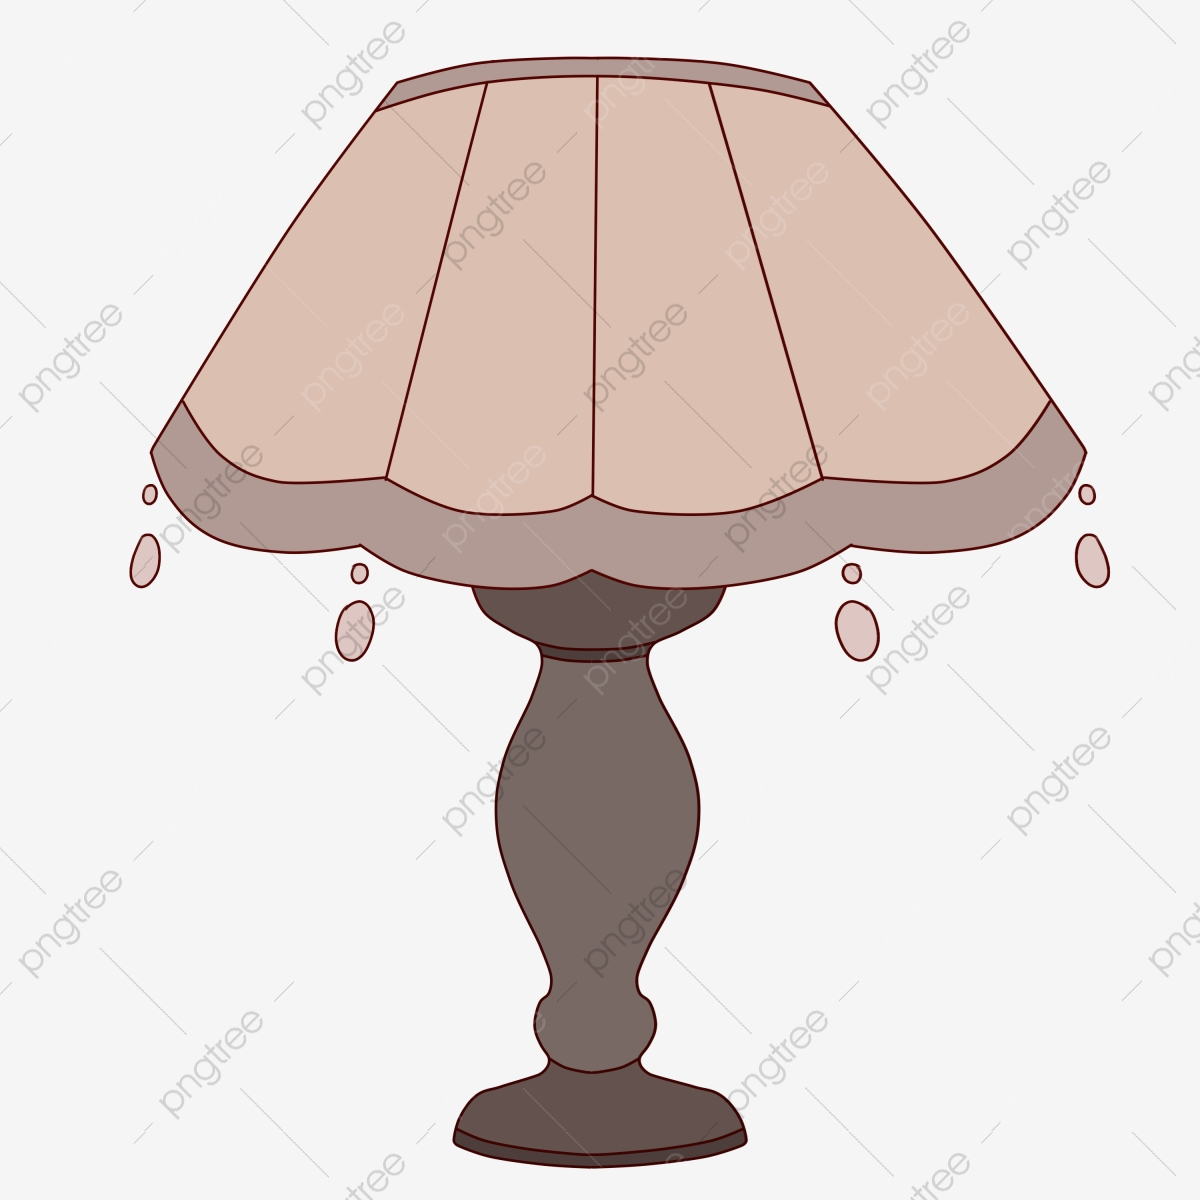 cartoon pink table lamp illustration table lamp bedroom table lamp cartoon table lamp png transparent clipart image and psd file for free download https pngtree com freepng cartoon pink table lamp illustration 4749193 html